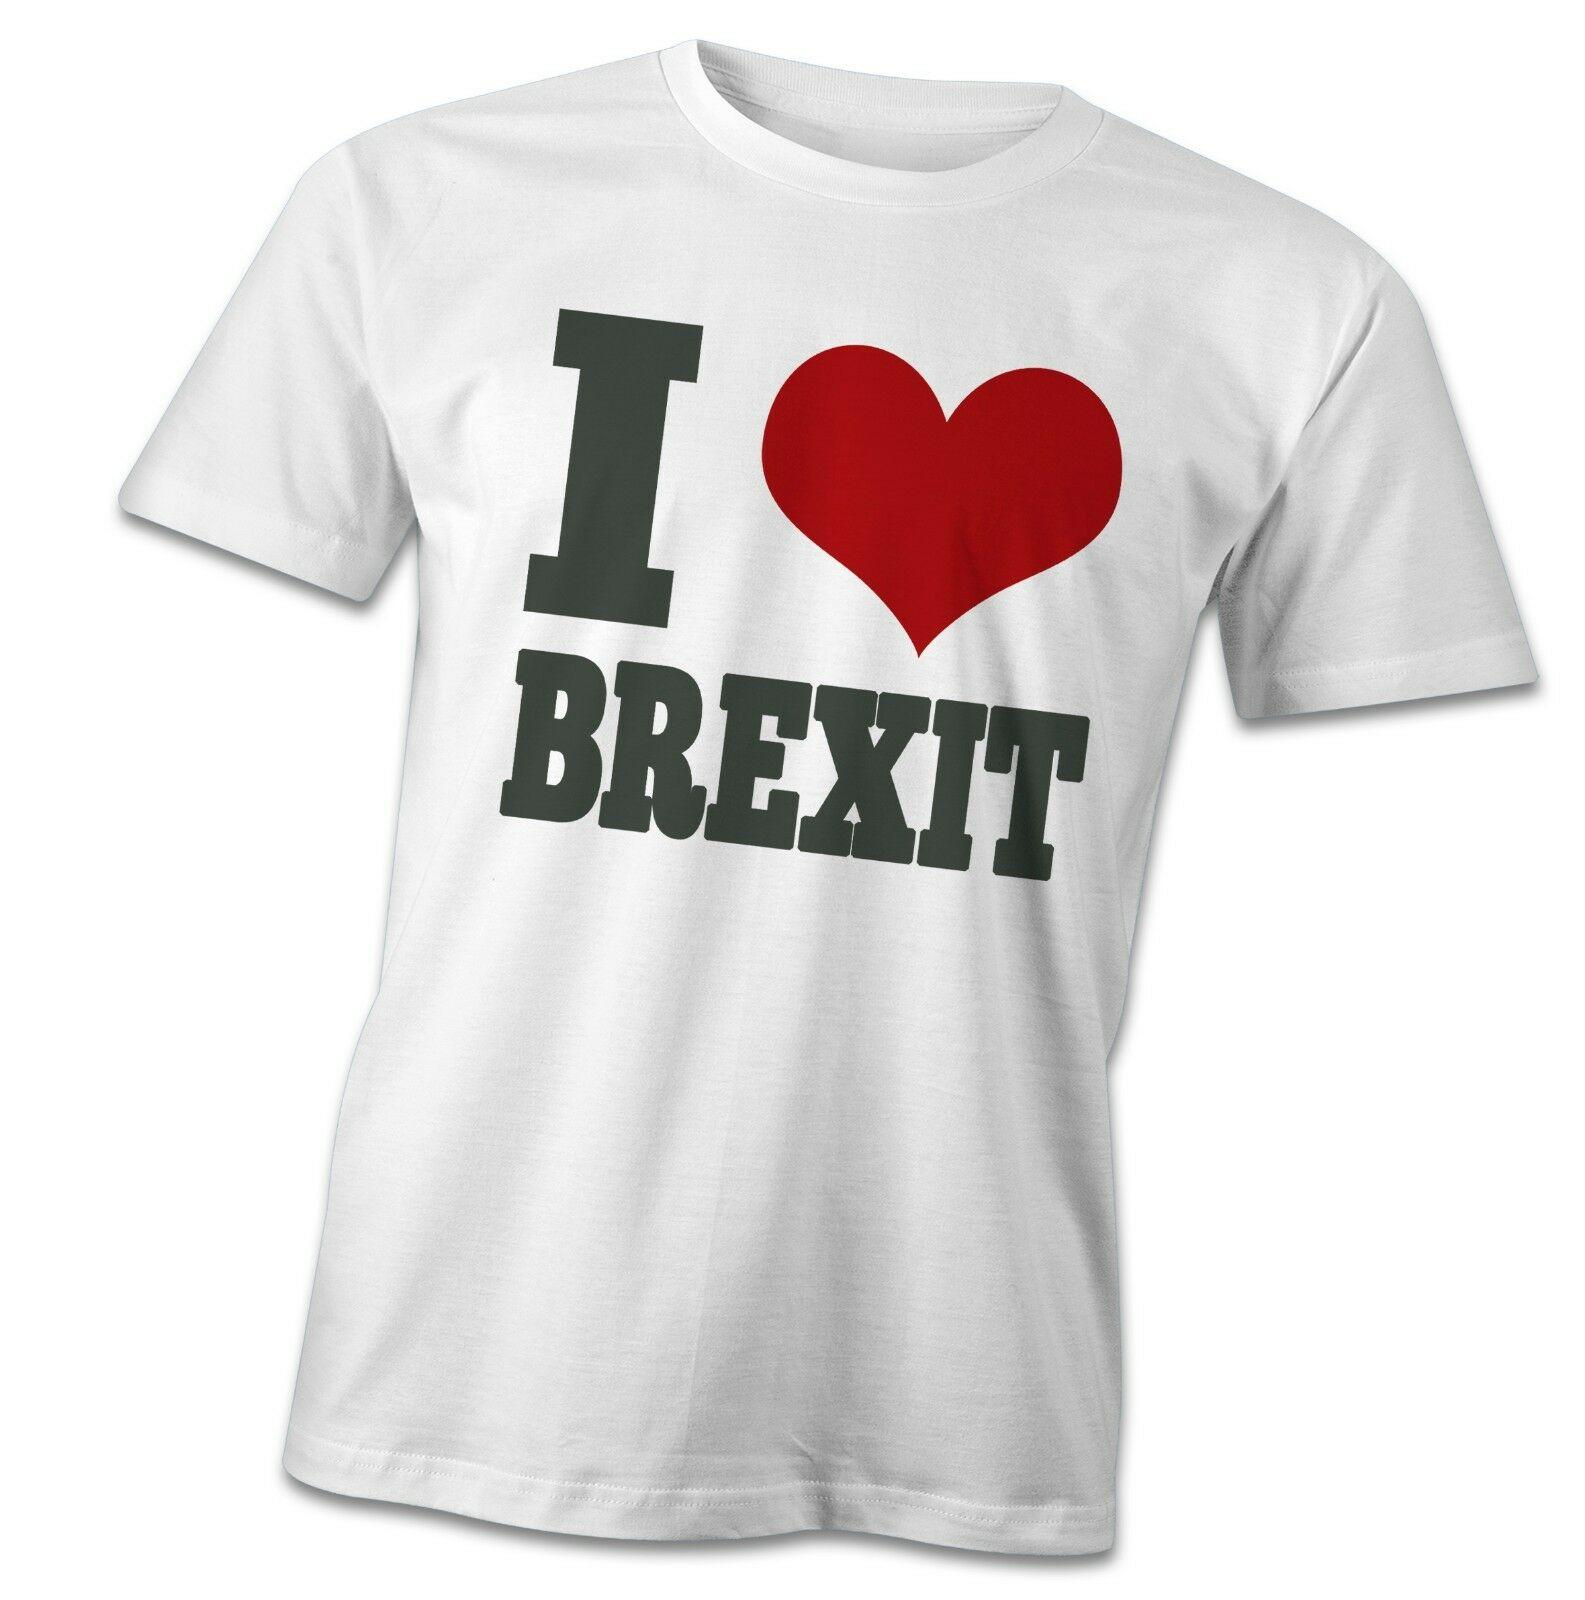 2452f0e37 I Love Brexit T Shirt, Anti EU, Pro EU Tee A Gift For Remainers Or  LeaversFunny Unisex Casual Top Cool Tees Graphic T Shirt From Dragontee,  $12.96| DHgate.